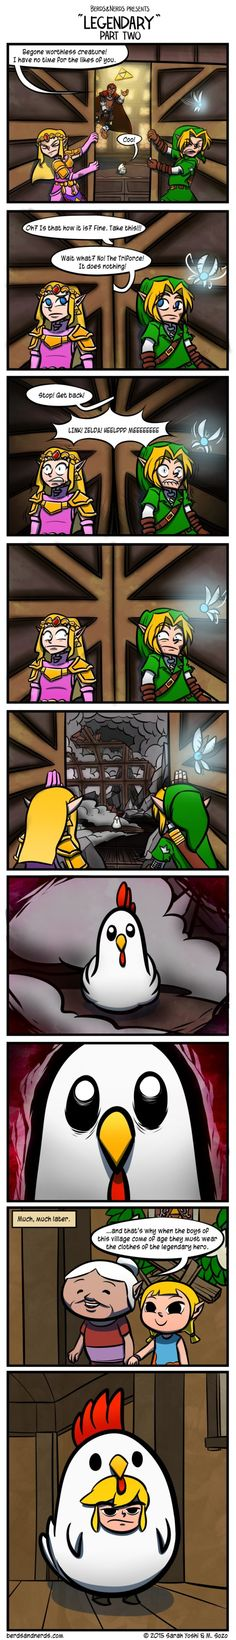 By Berds and Nerds comic part 2